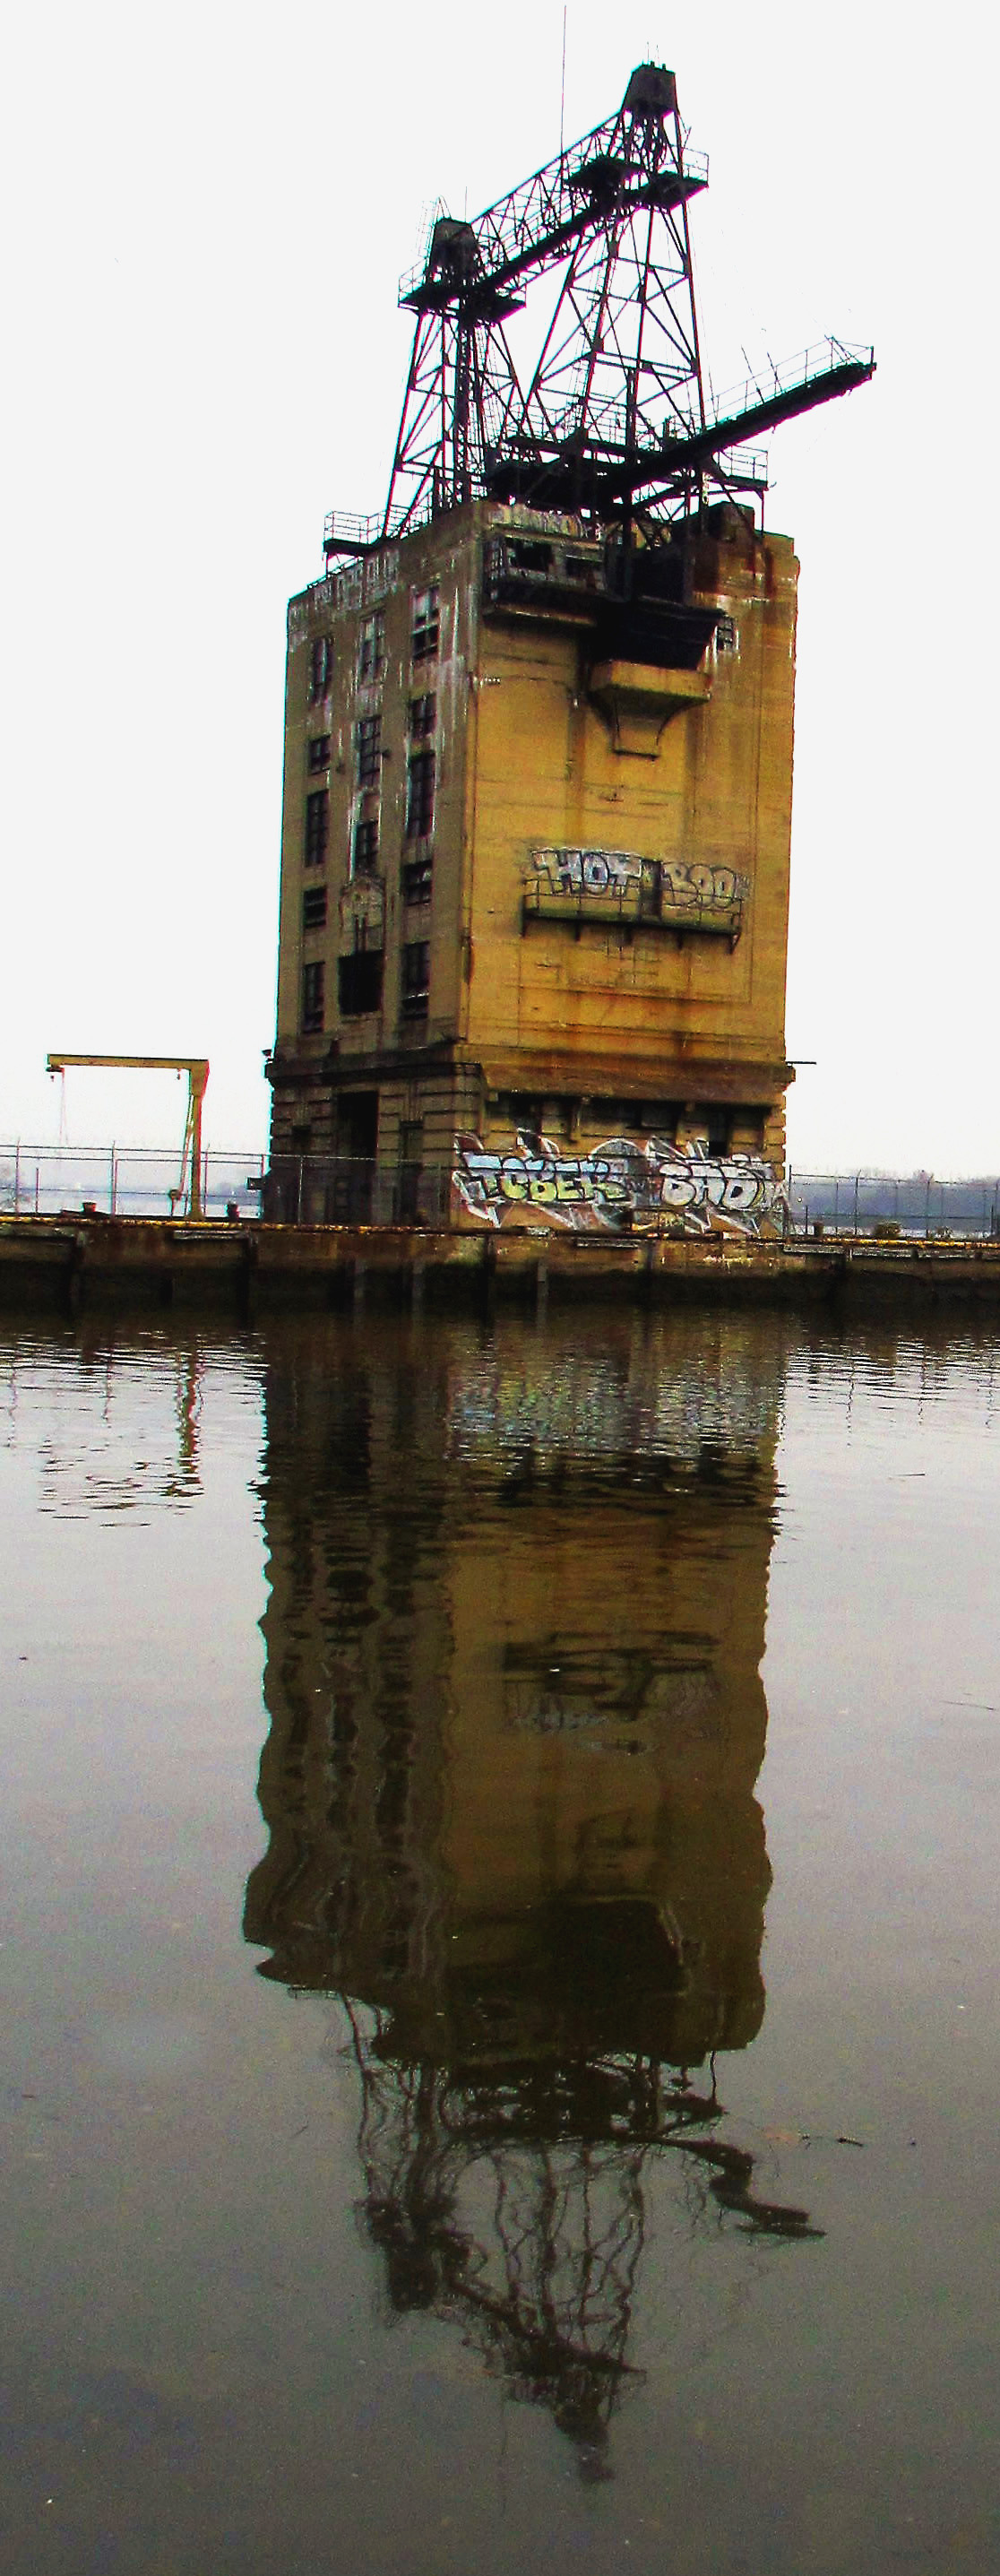 PECO Delaware Station Coal Tower In Fishtown